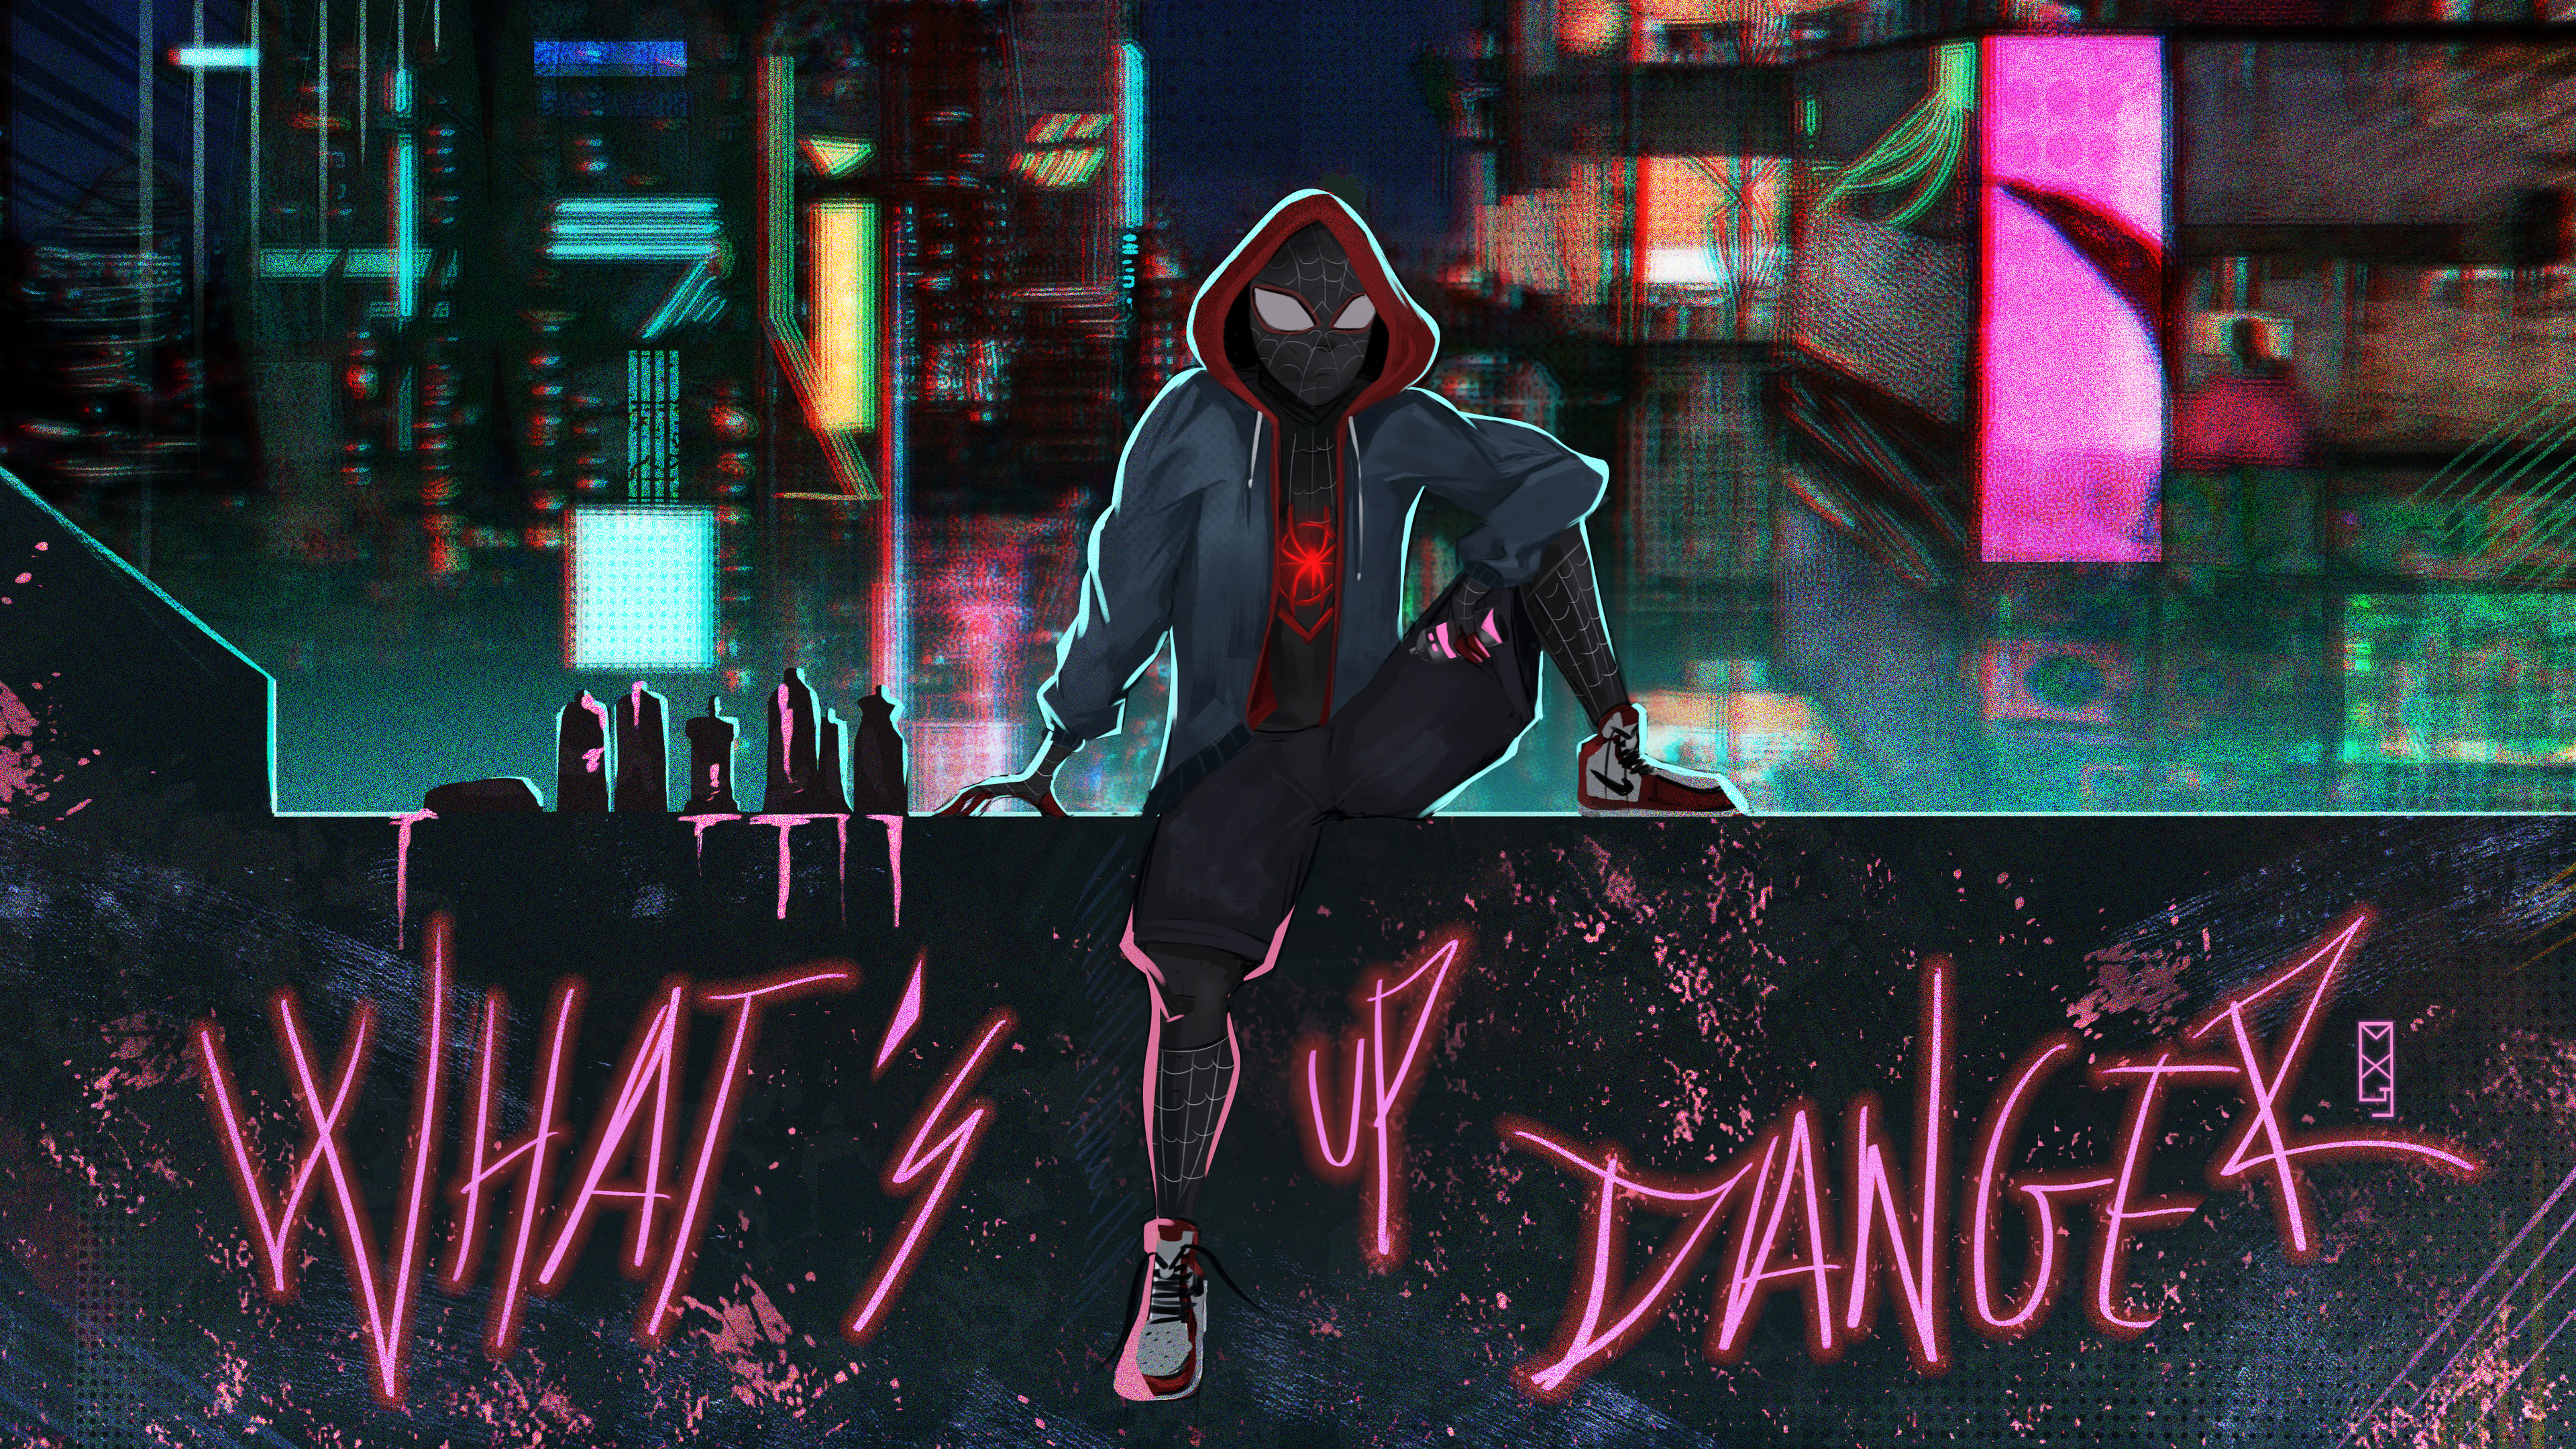 spider verse what up danger 4k 1557260149 - Spider Verse What Up Danger 4k - superheroes wallpapers, spiderman wallpapers, spiderman into the spider verse wallpapers, hd-wallpapers, digital art wallpapers, deviantart wallpapers, artwork wallpapers, artist wallpapers, 4k-wallpapers